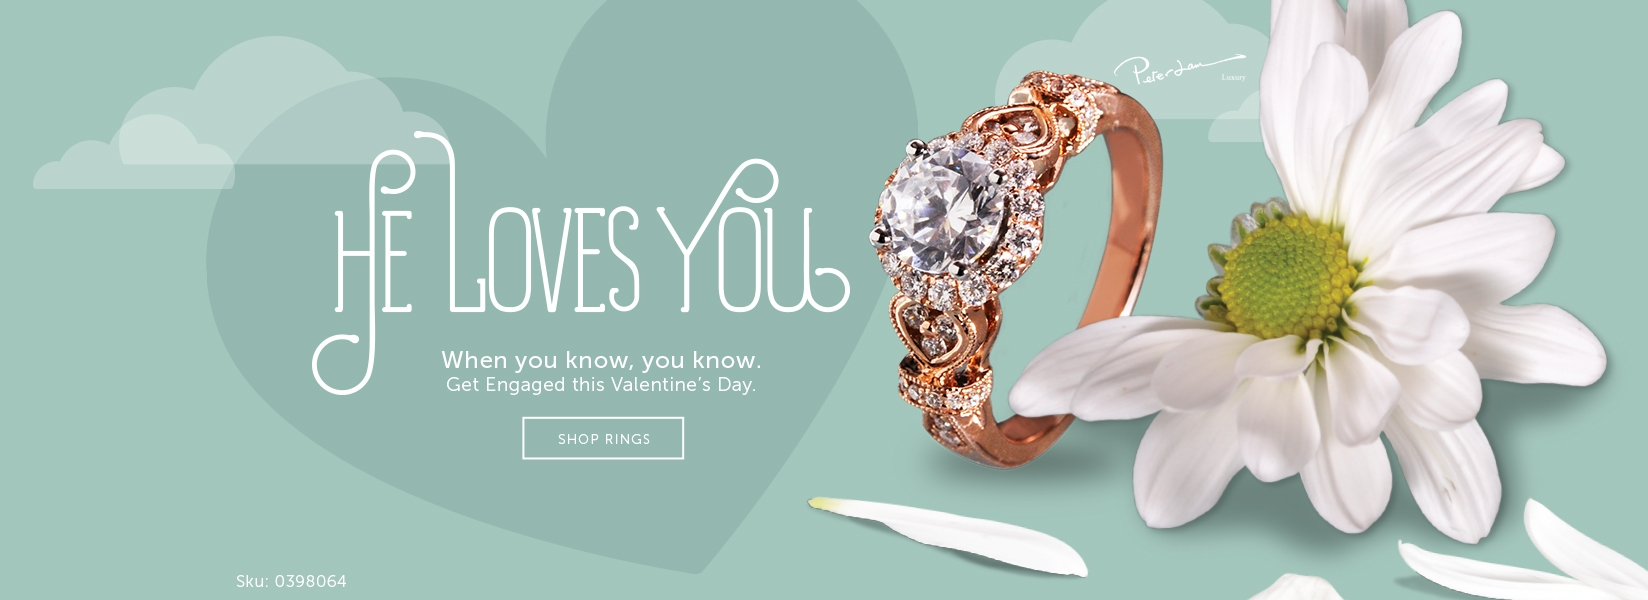 He loves you. When you know, you know. Get engaged this Valentines Day.